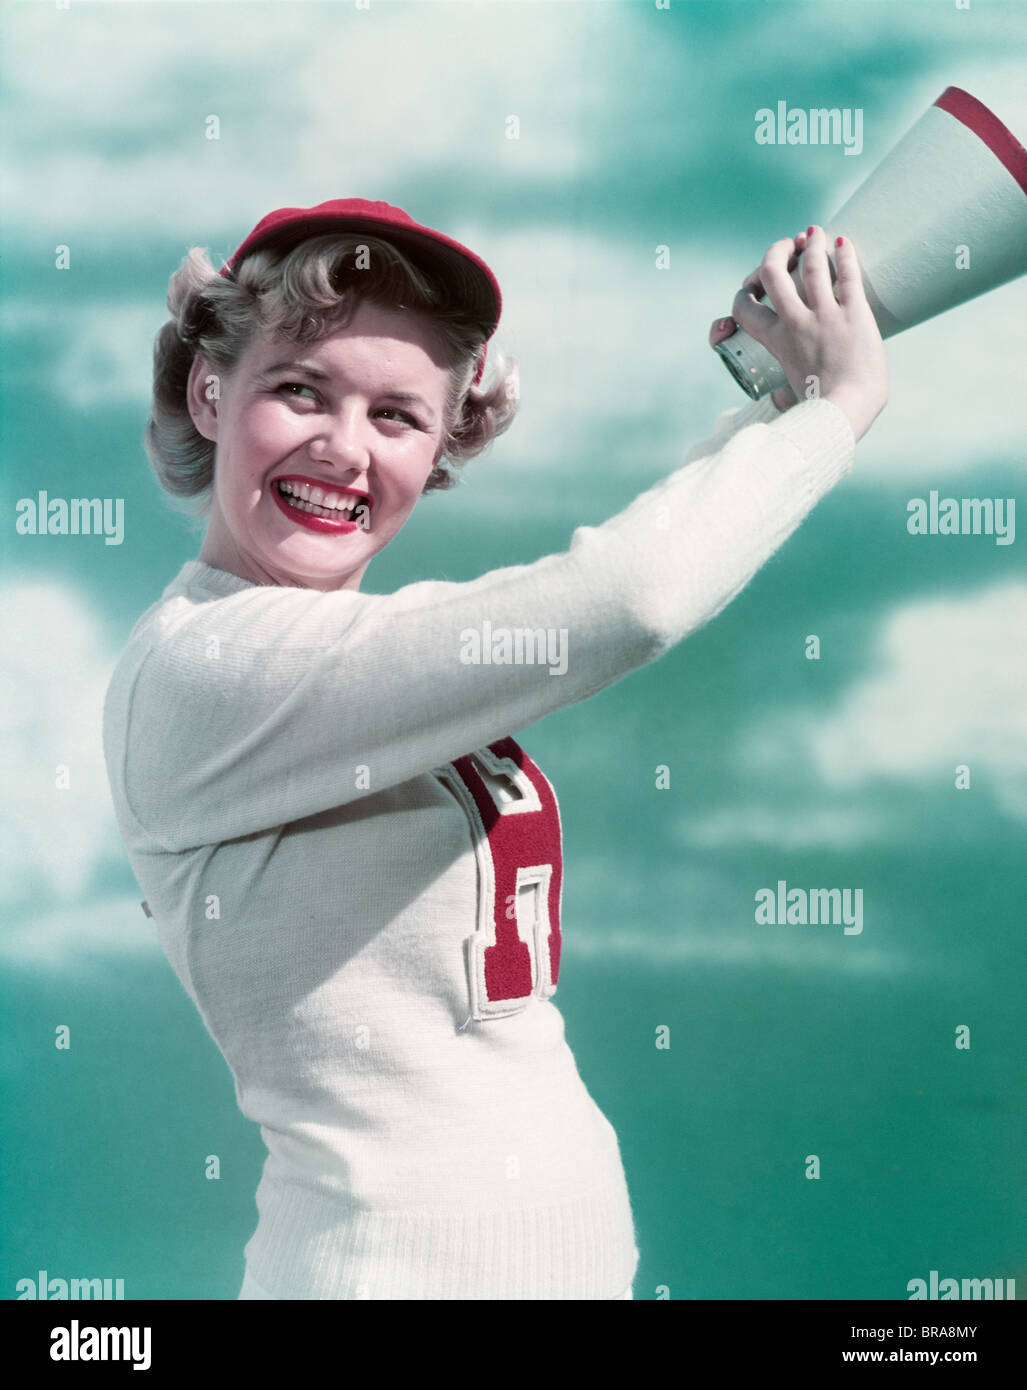 Années 1940 Années 1950 SMILING WOMAN WEARING CHEERLEADER LETTRE VARSITY SWEATER POINTING Photo Stock